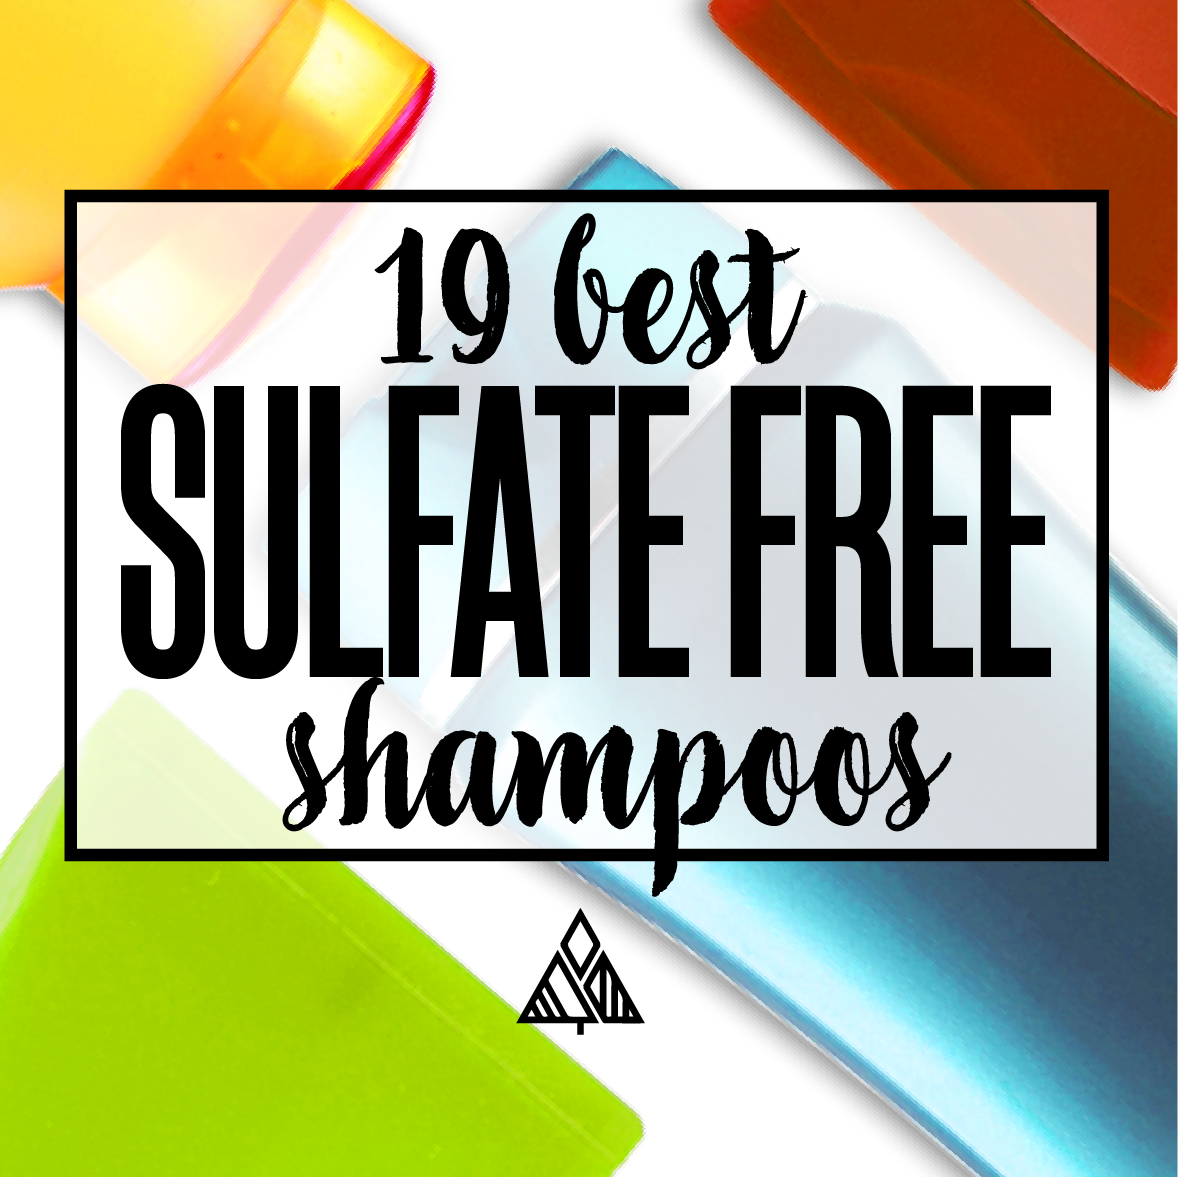 19 Best Sulfate Free Shampoos